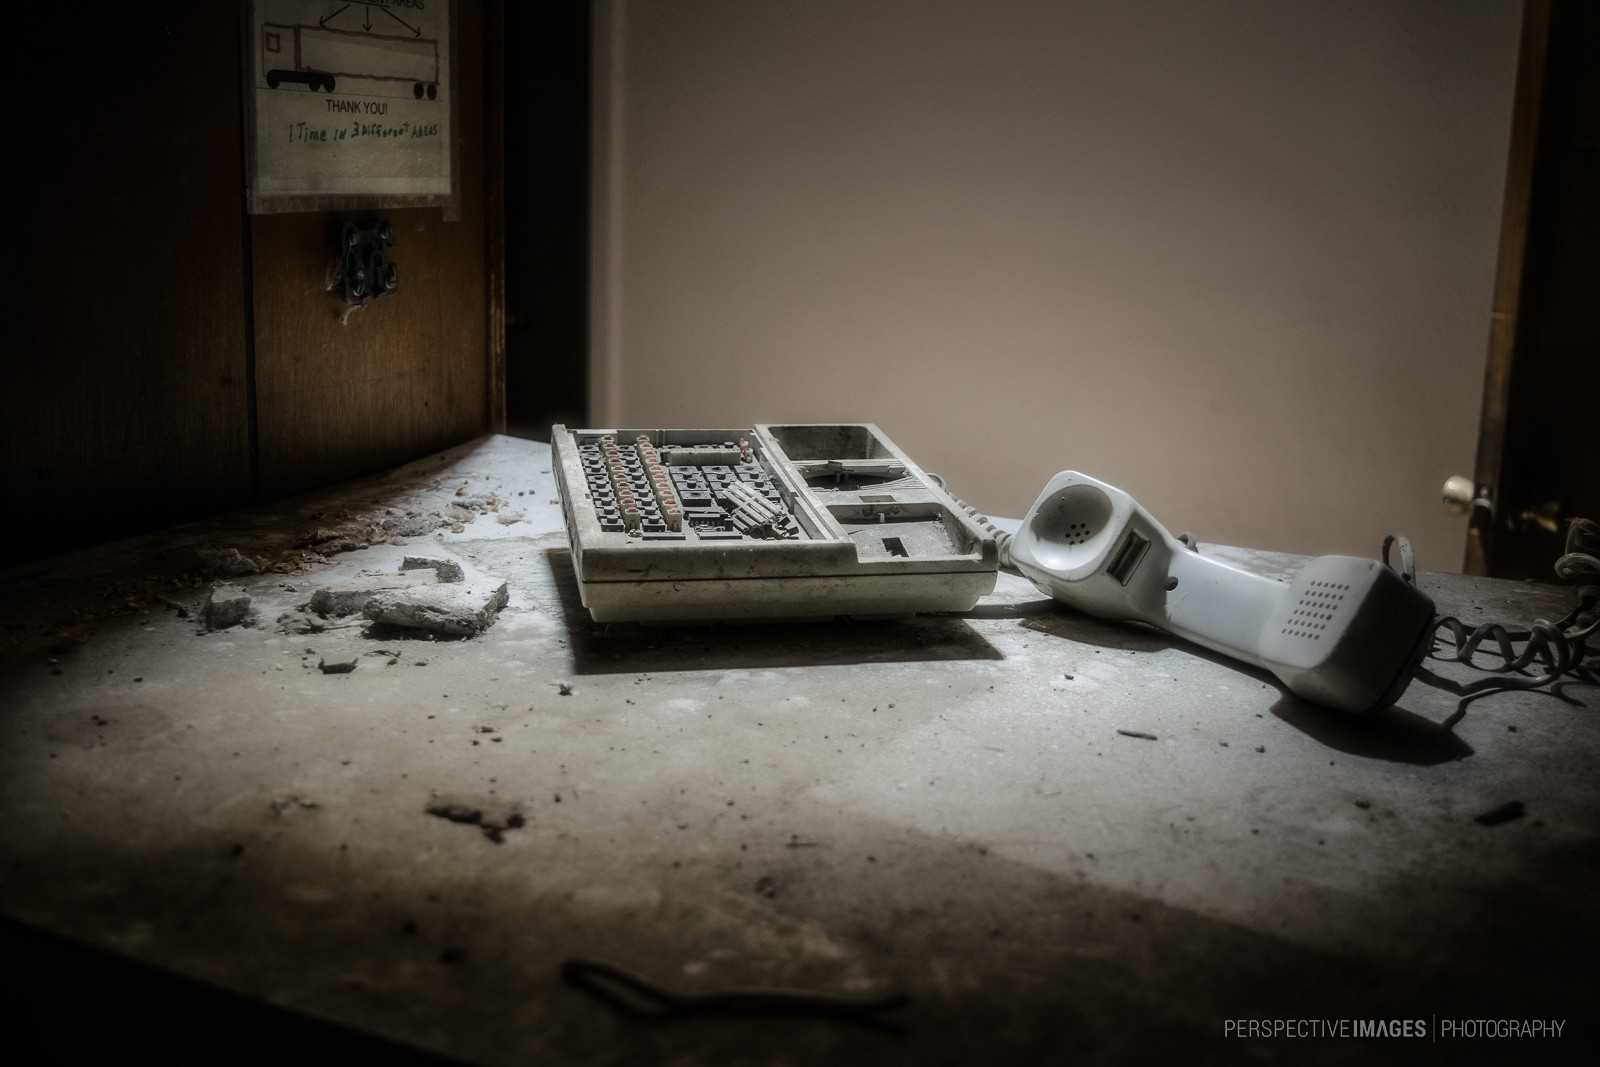 I Called but No One Answered - A smashed phone sits at the front desk of the feedlot office.